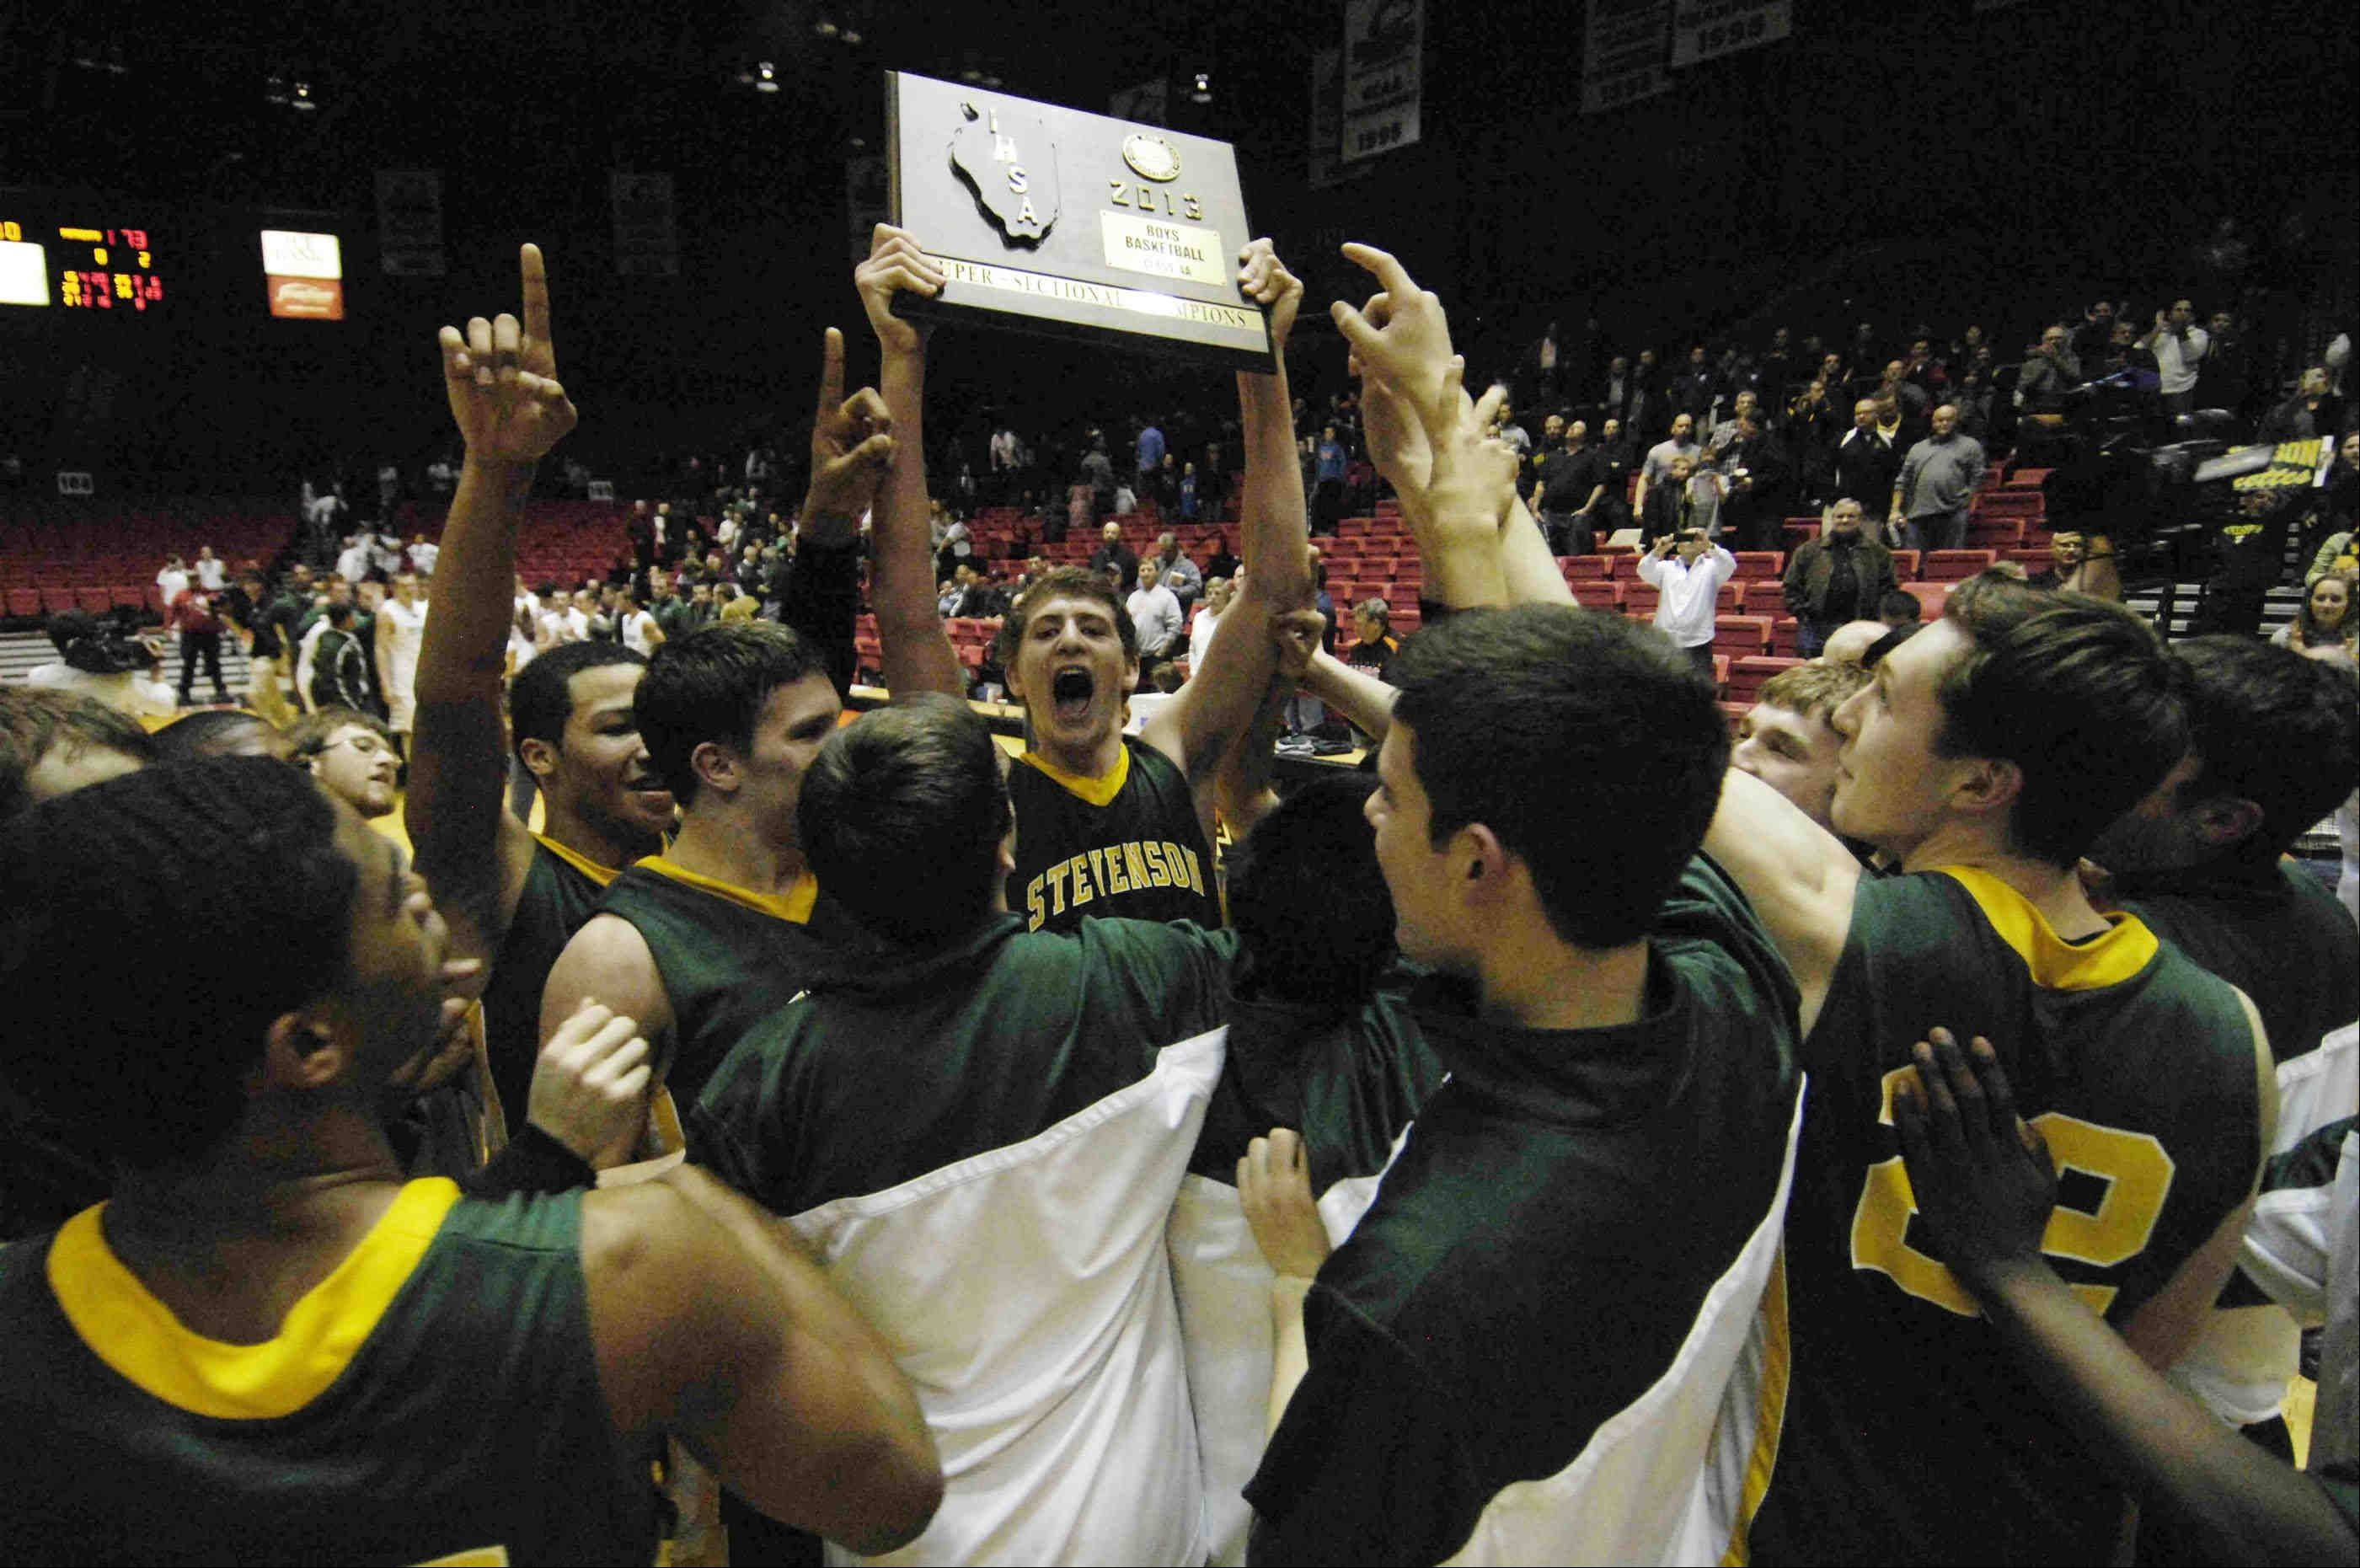 Images from the Stevenson vs. Rockford Boylan Class 4A boys basketball NIU supersectional game at the Convocation Center on Tuesday, March 12 in DeKalb.